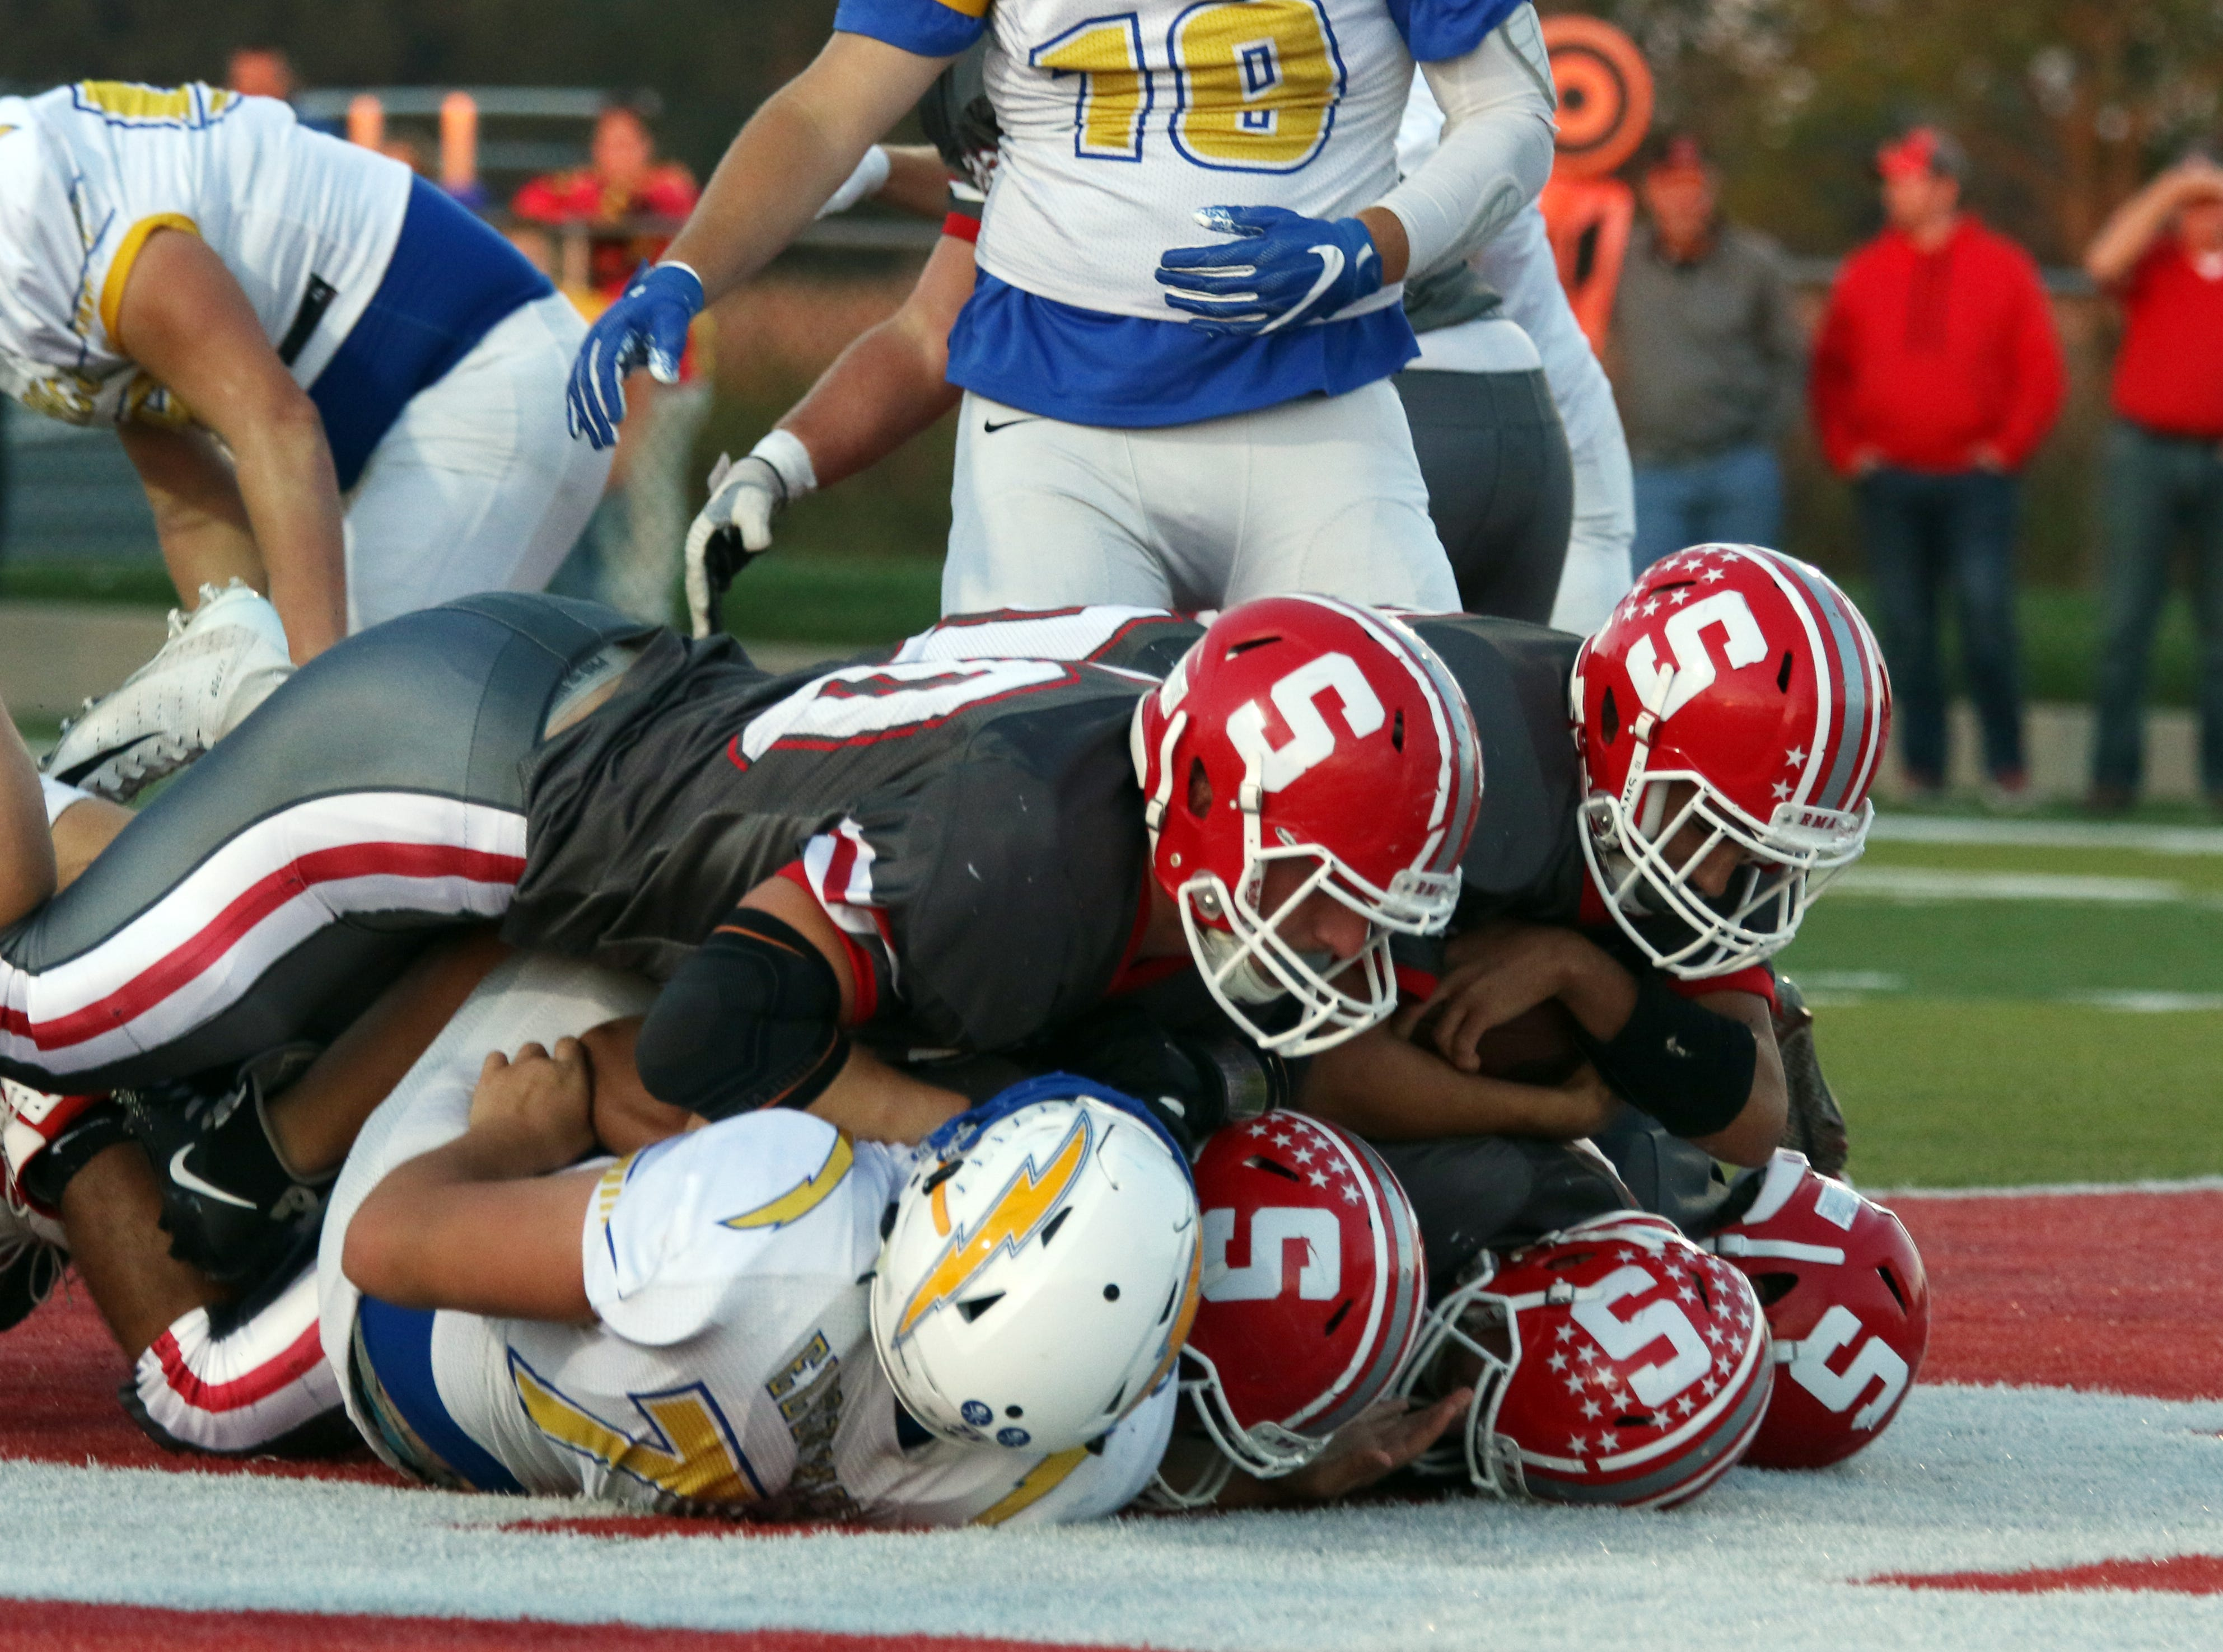 Sheridan's Isaiah Austin tumbles into the endzone for a touchdown against Philo.